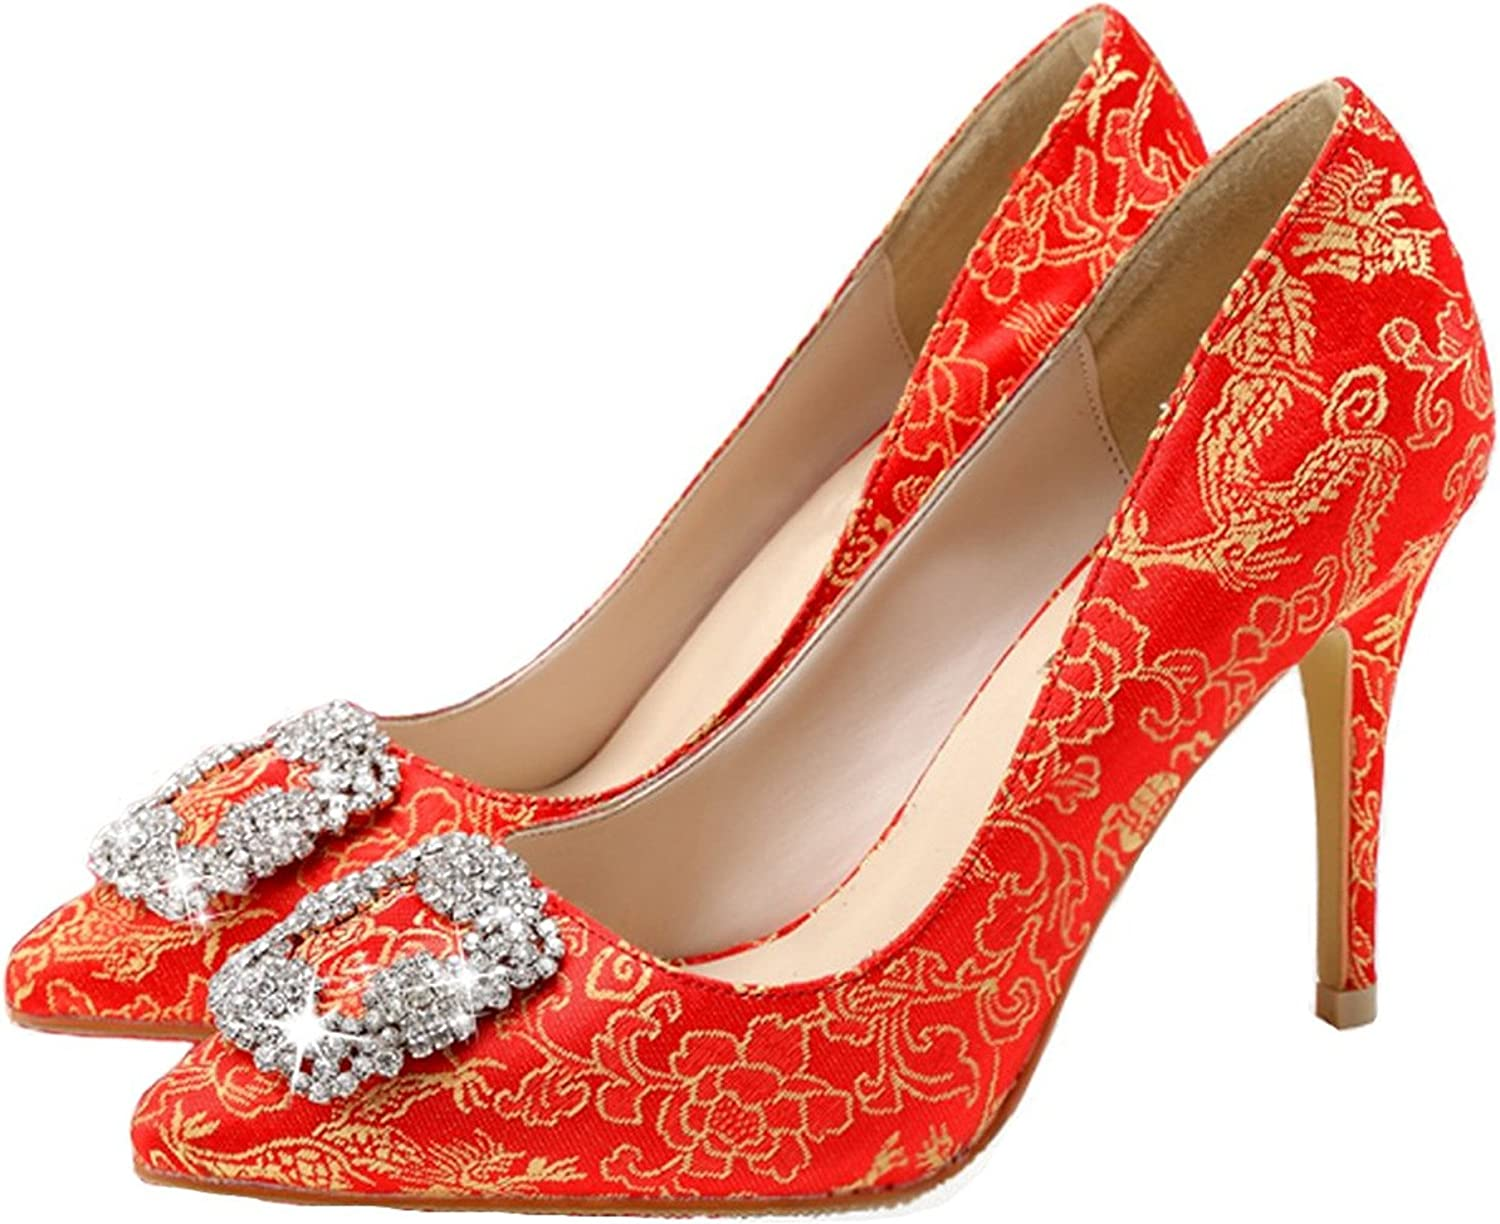 Reinhar Shiny Toe Wedding Pump Satin Exotic Embroidery Dress High Heel